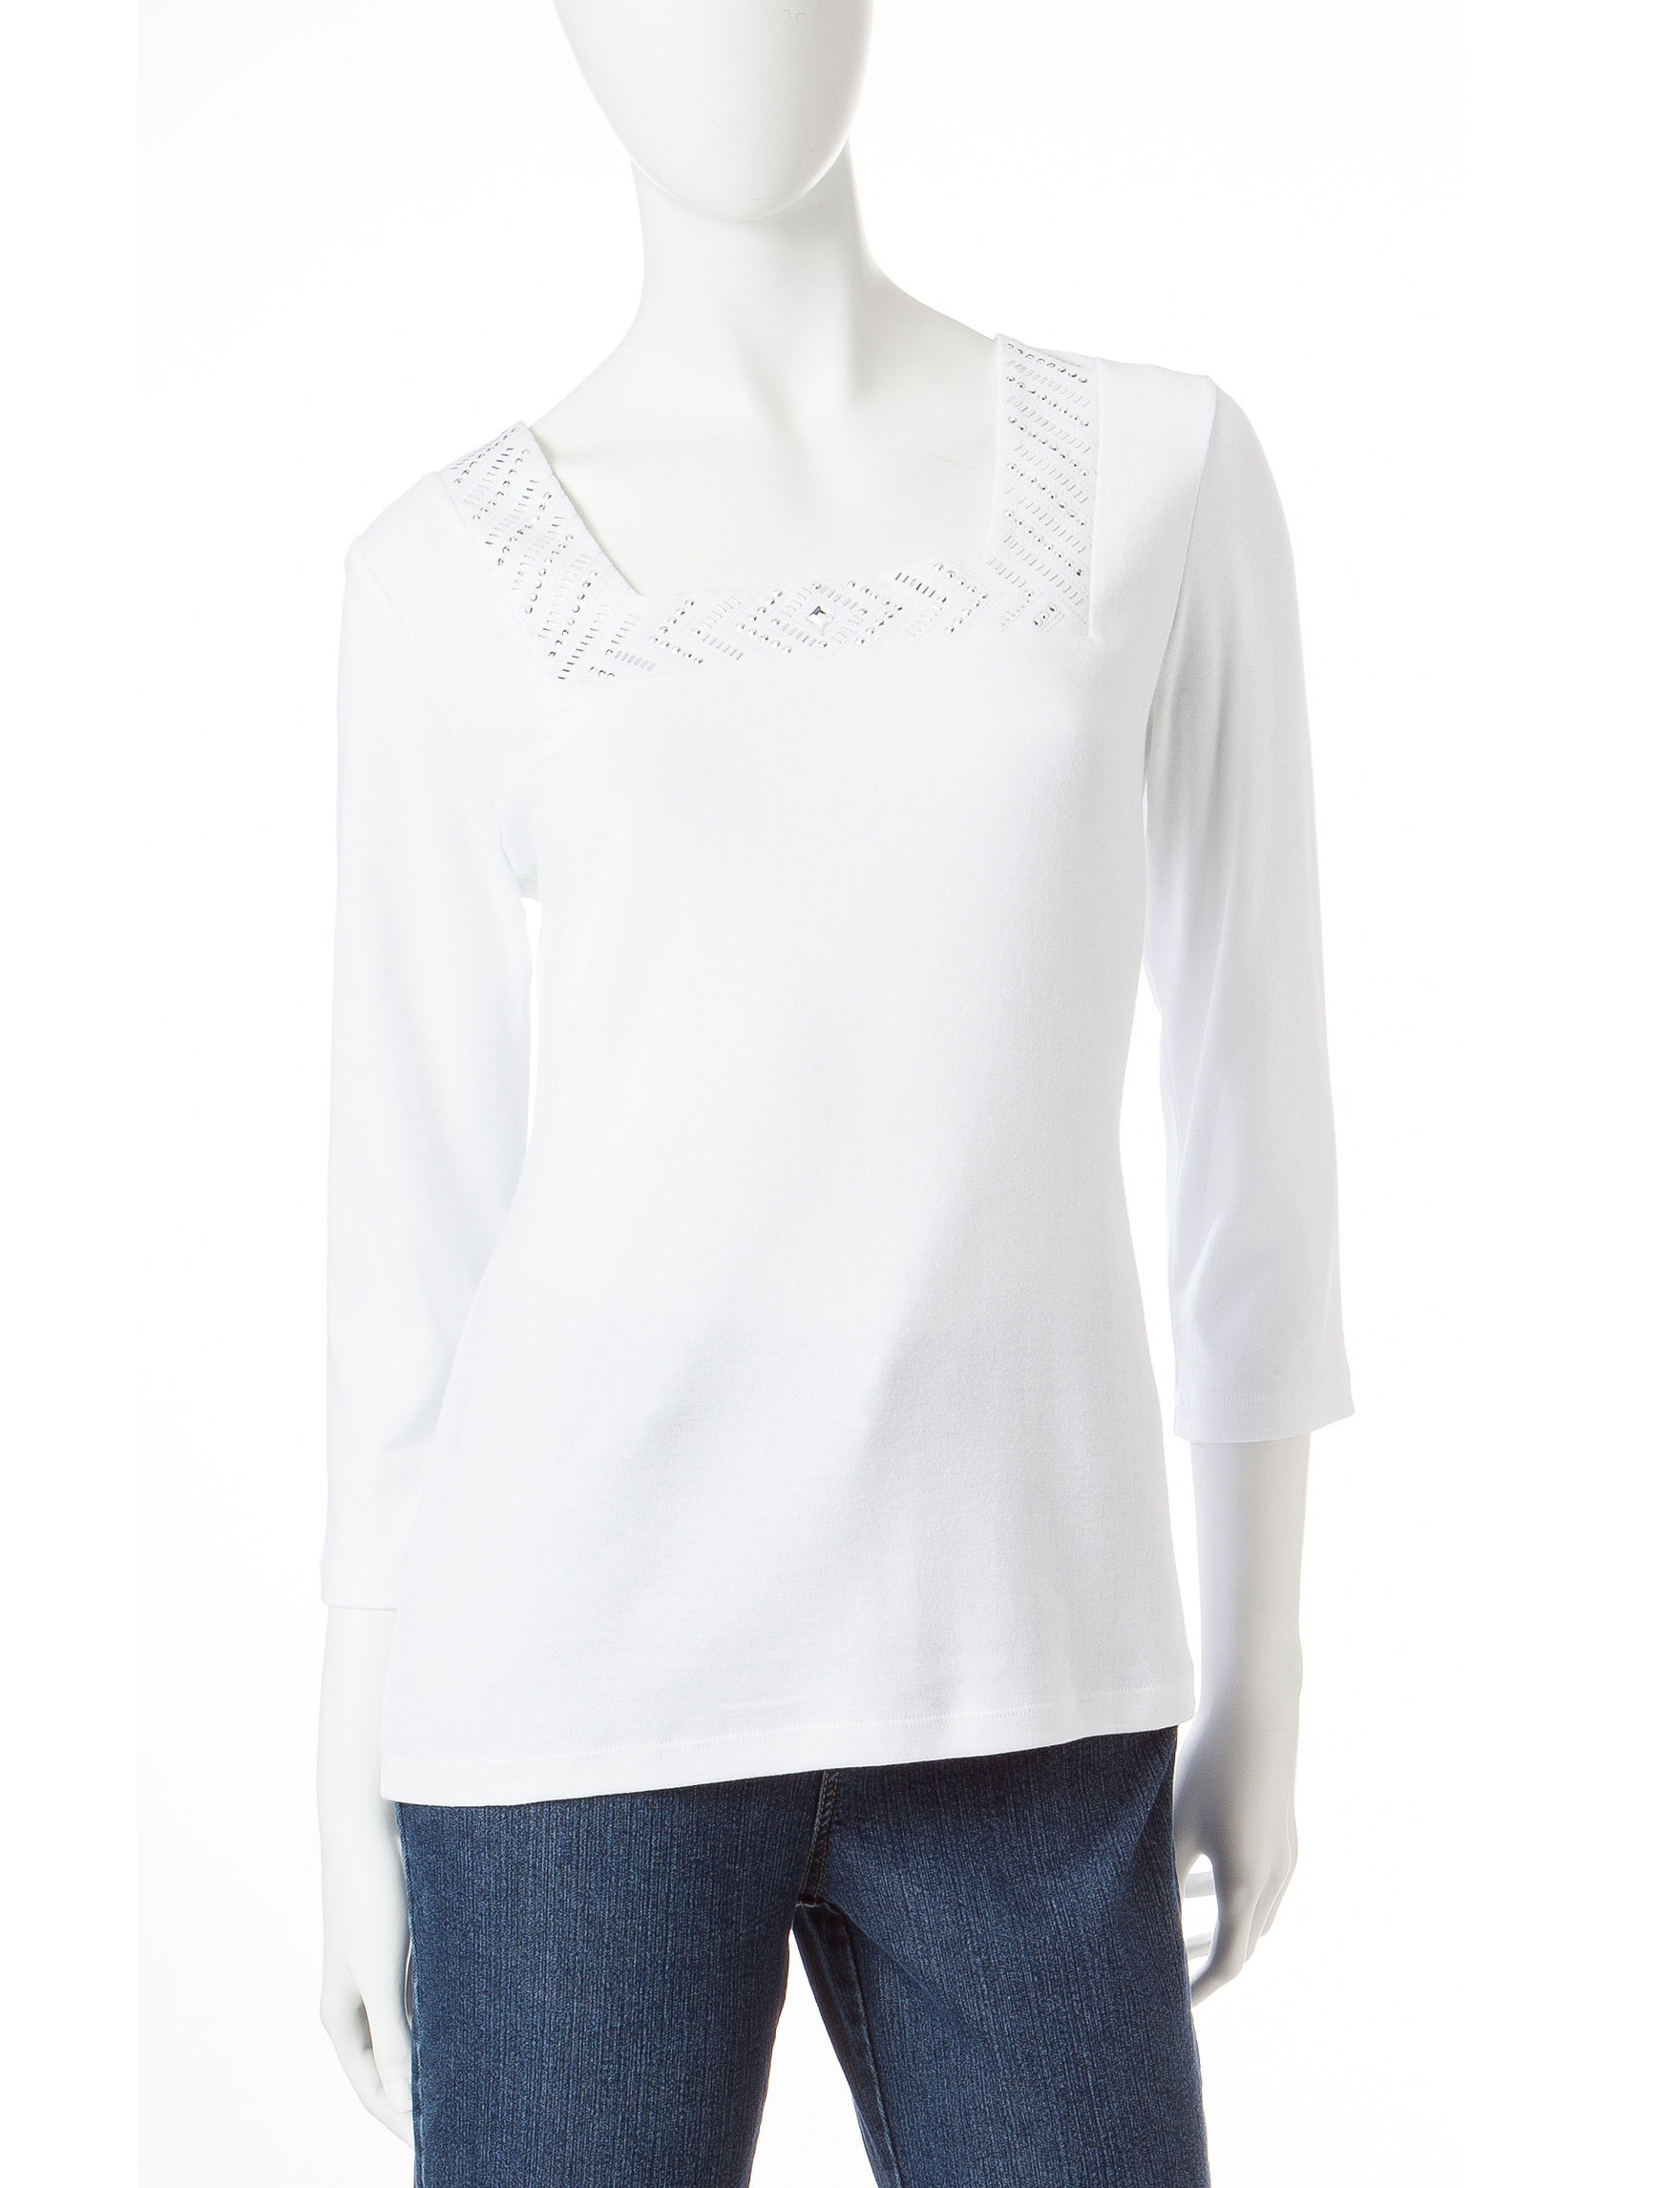 Rebecca Malone White Pull-overs Shirts & Blouses